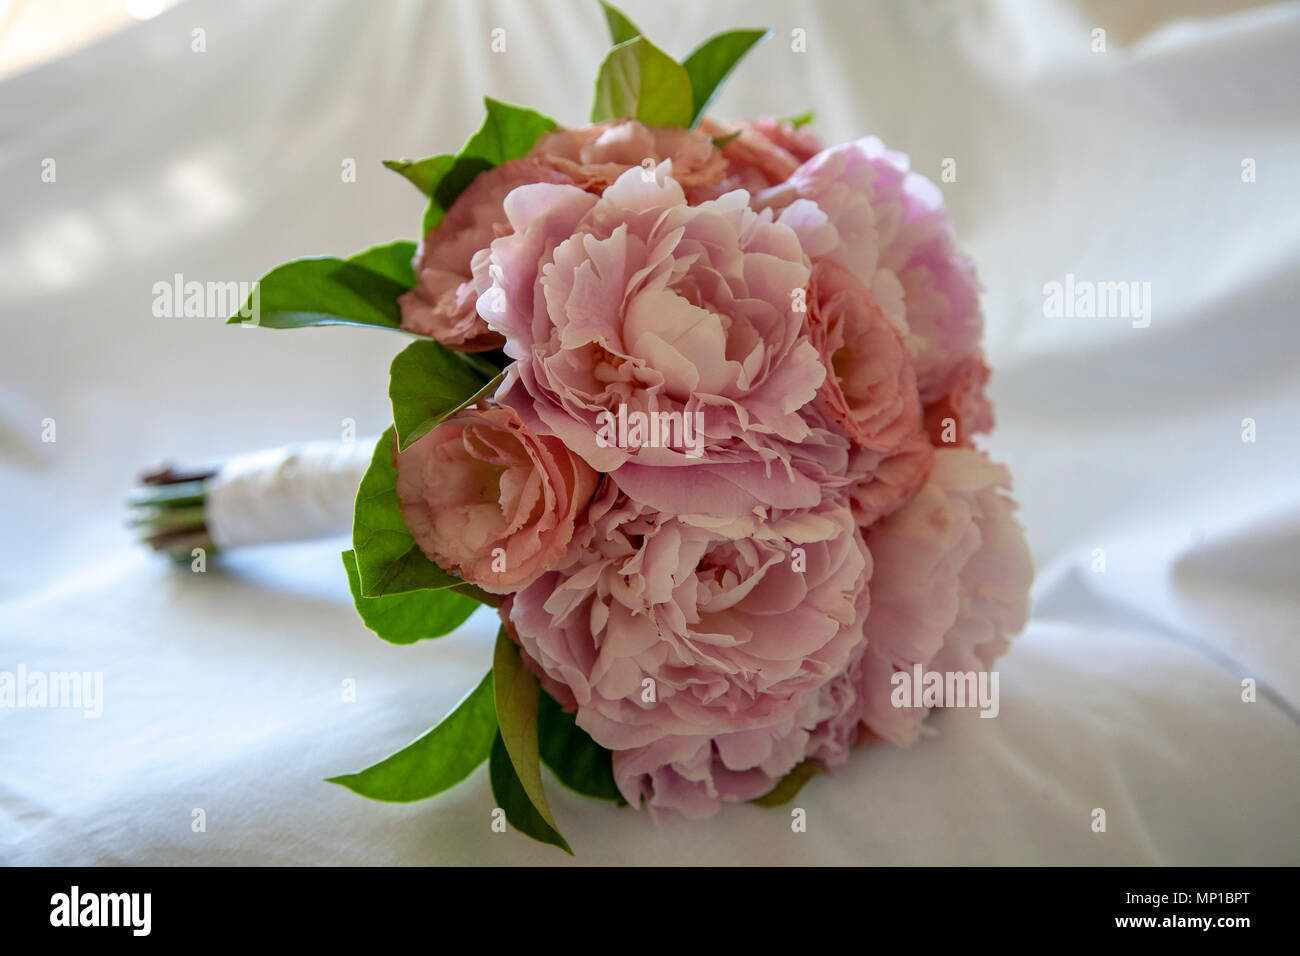 Mauve Peonies On White And Sea Classy Vintage Home Decor Bouquet